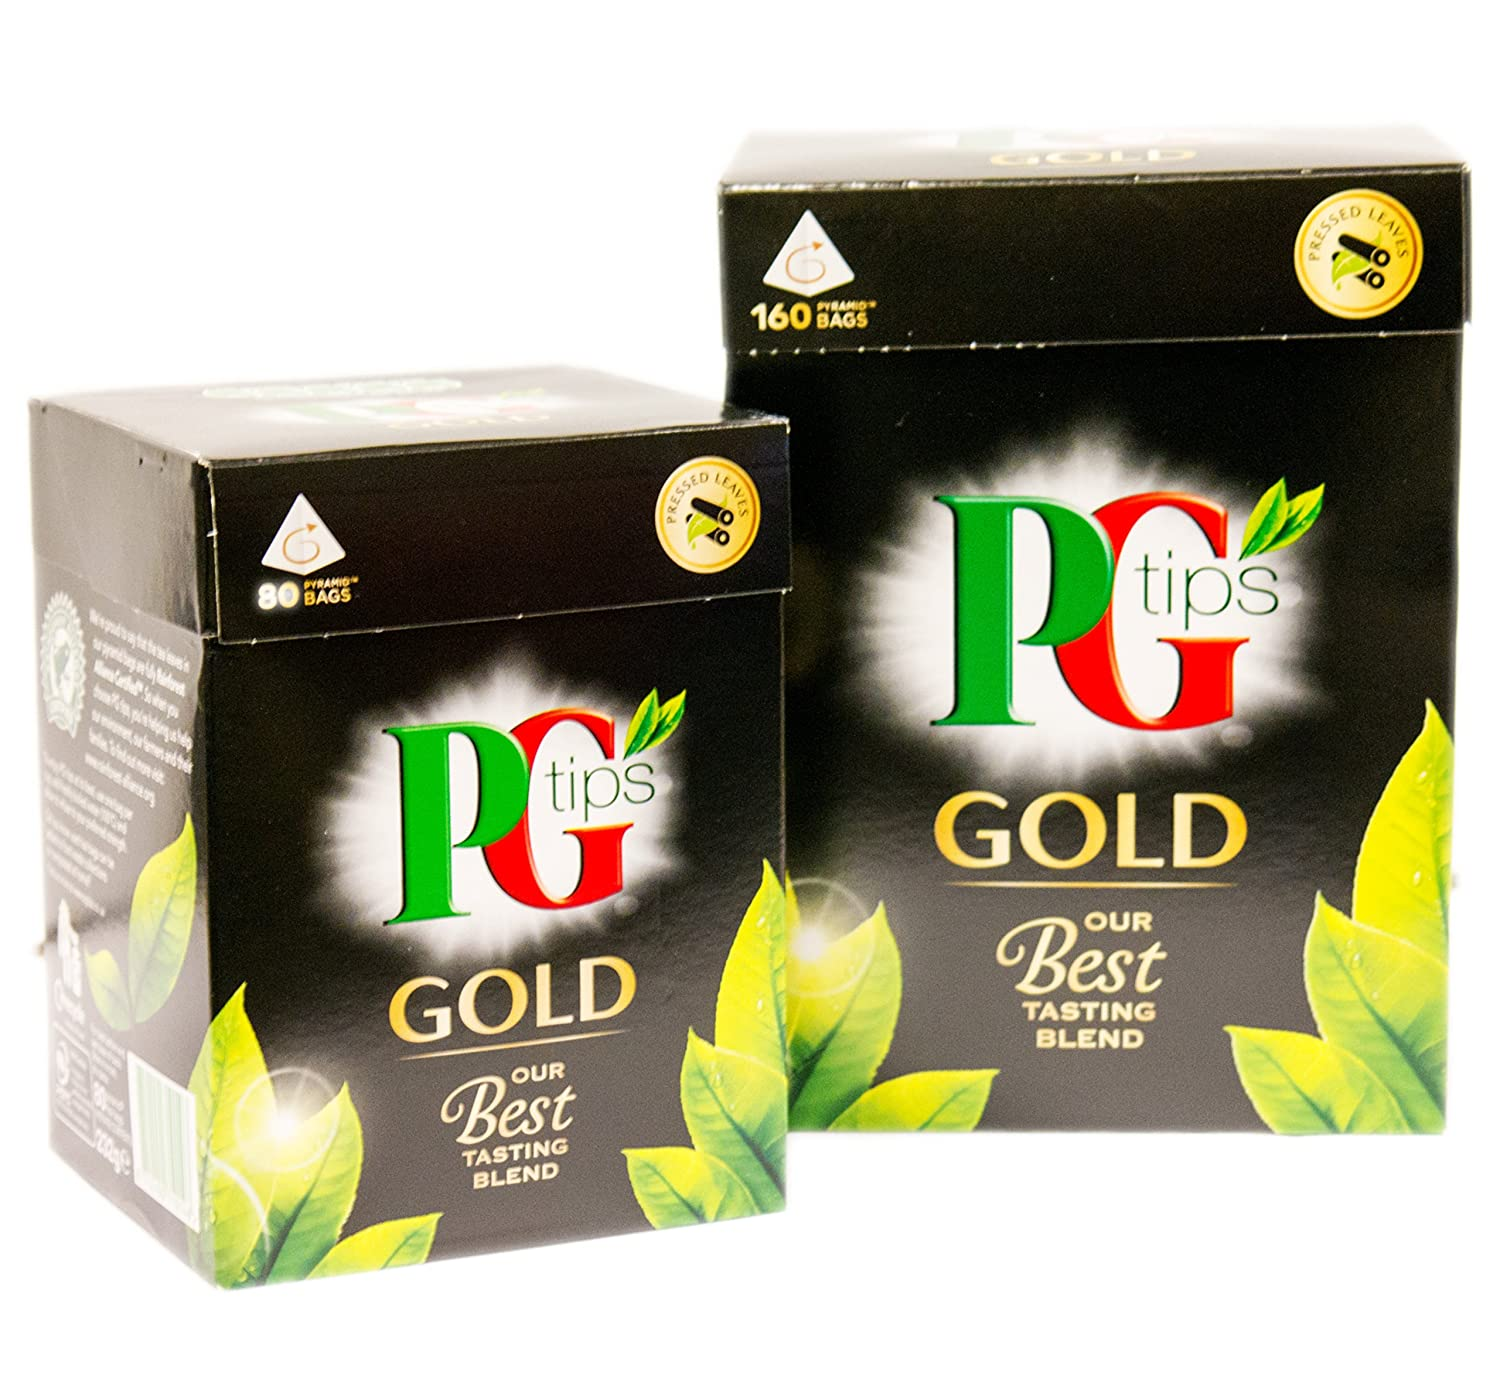 PG Tips Gold Best Tasting Blend (80 Tea Bags) 107537060